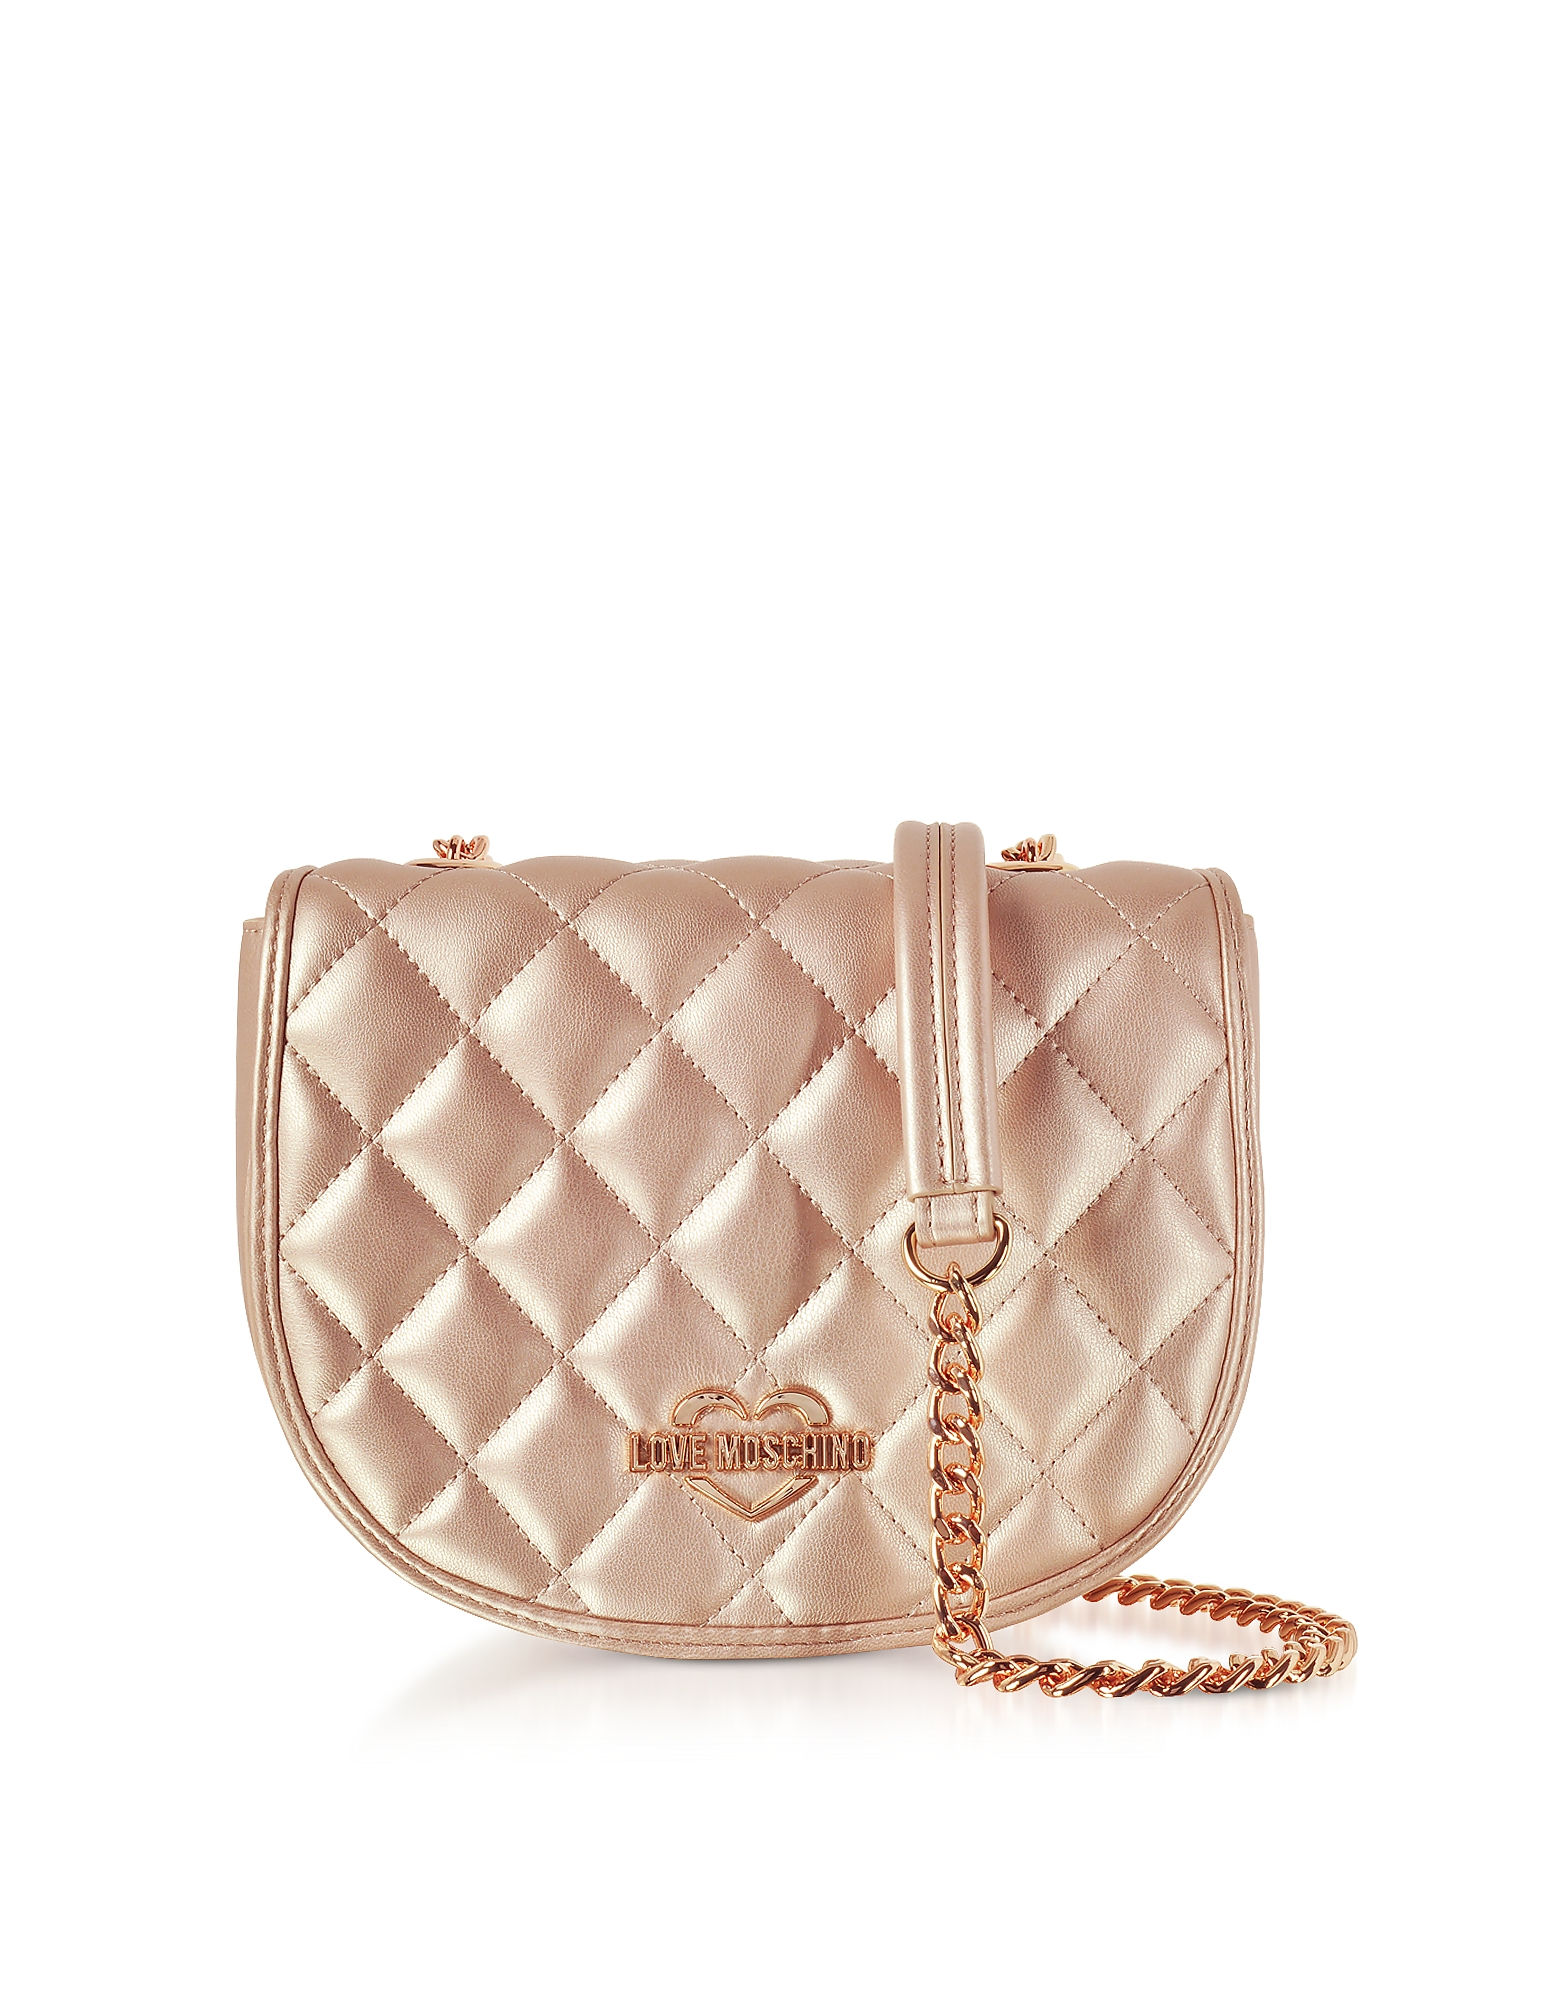 Love Moschino Handbags, Copper Metallic Quilted Eco-Leather Crossbody Bag